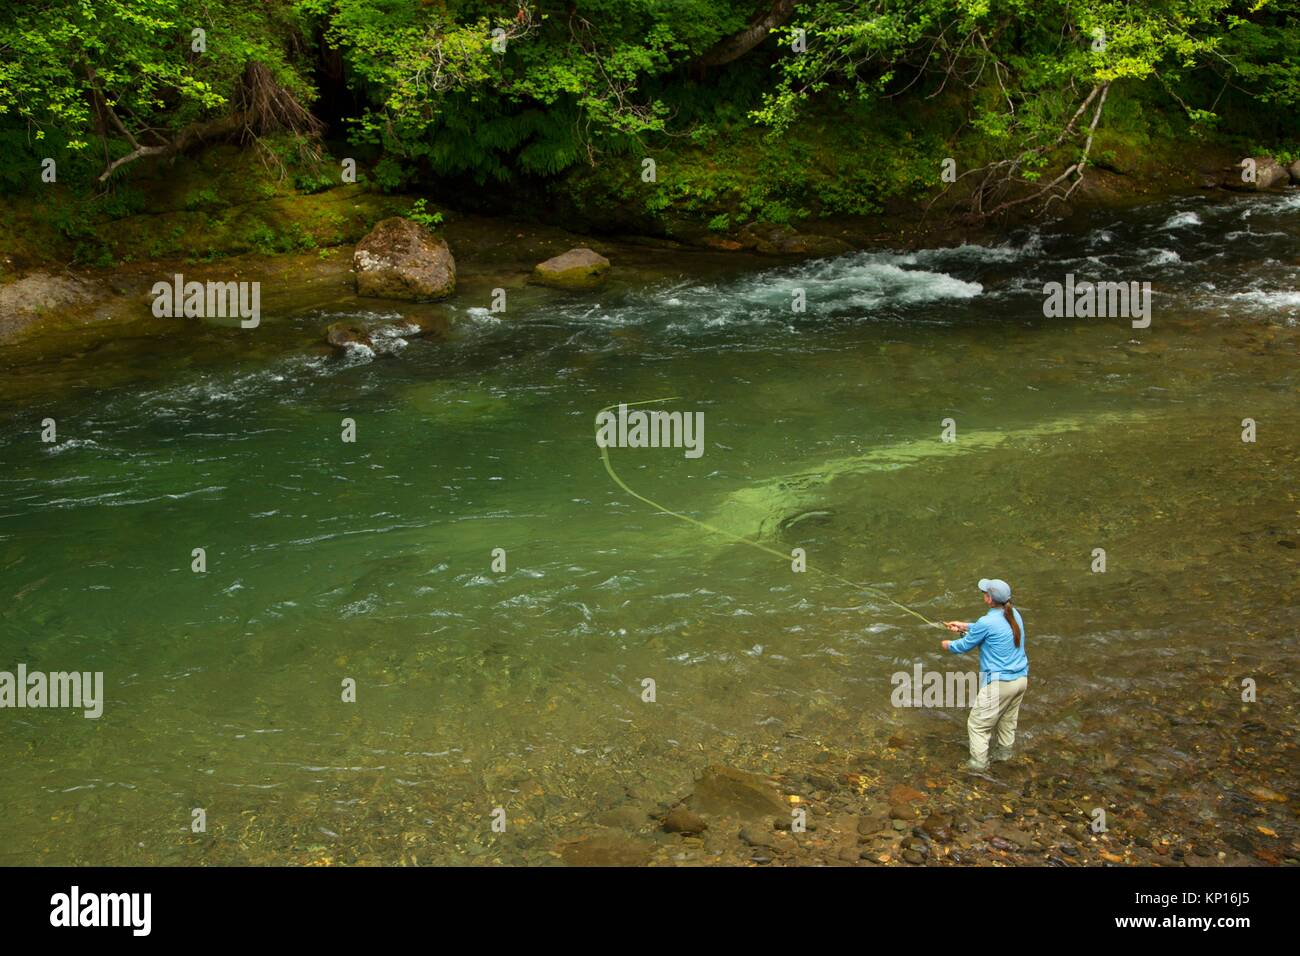 Fly fishing the Lewis River, Gifford Pinchot National Forest, Washington. - Stock Image